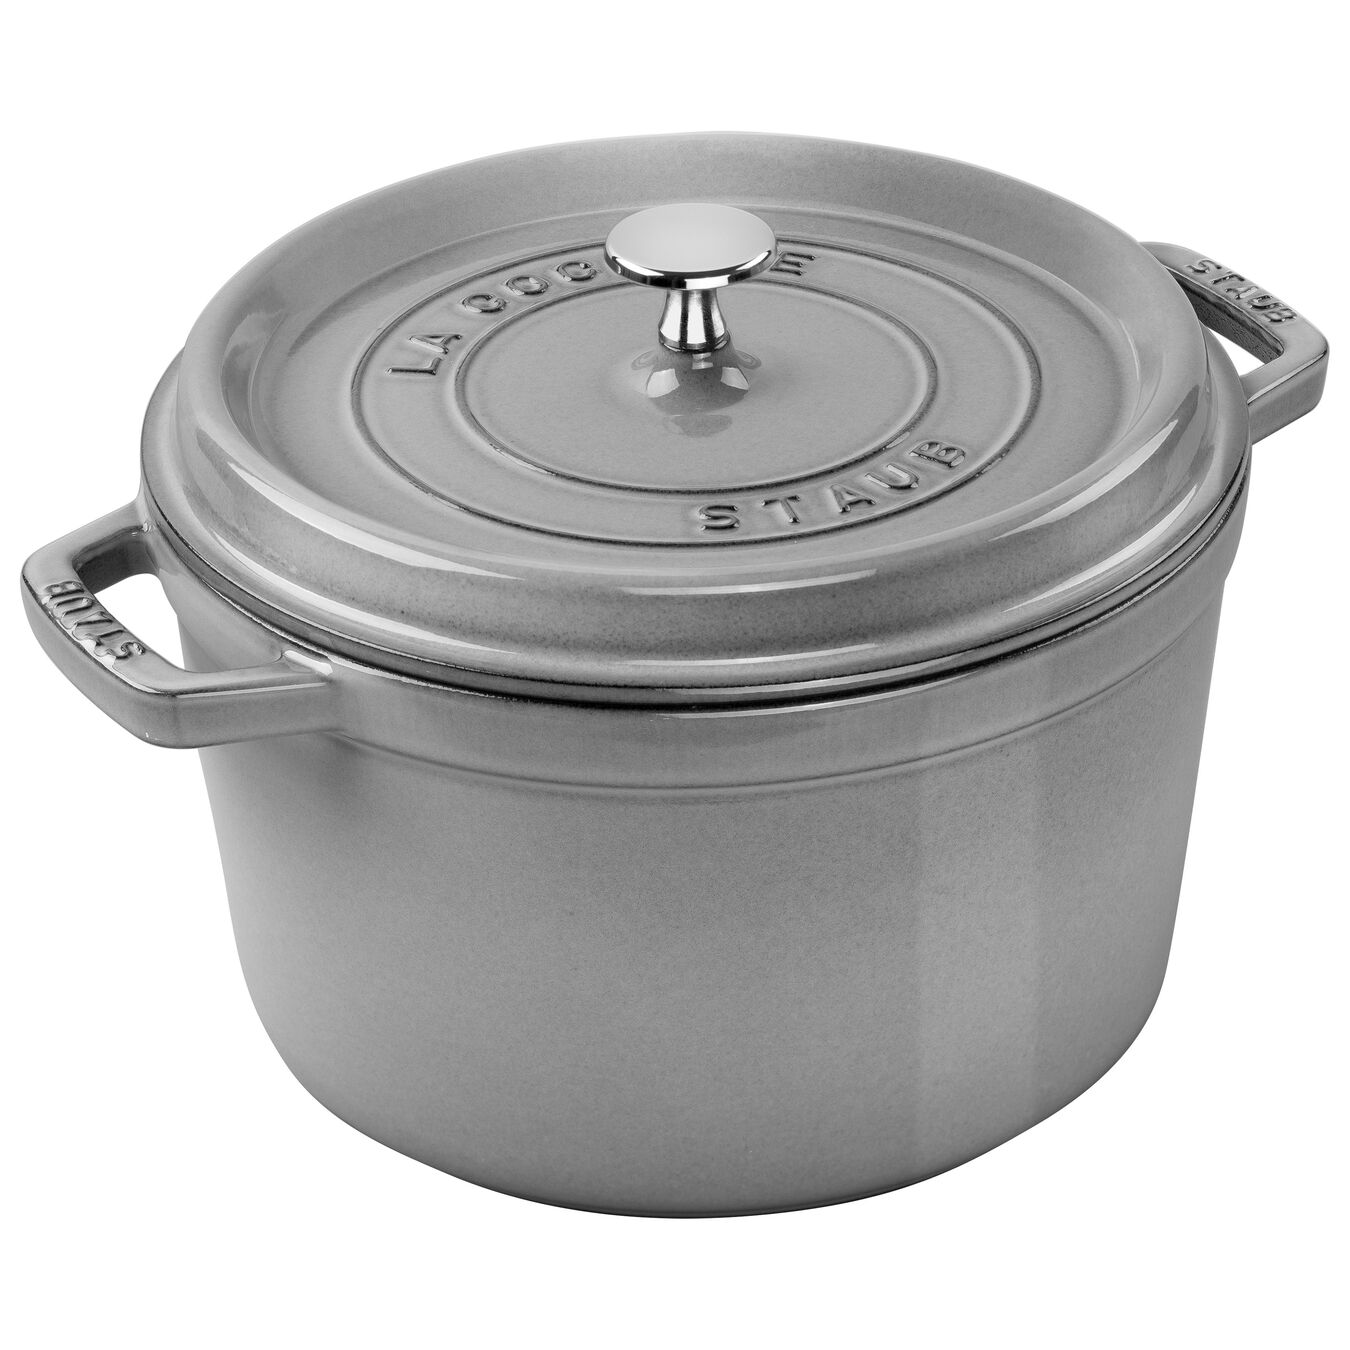 5 qt, round, Cocotte, graphite grey - Visual Imperfections,,large 1